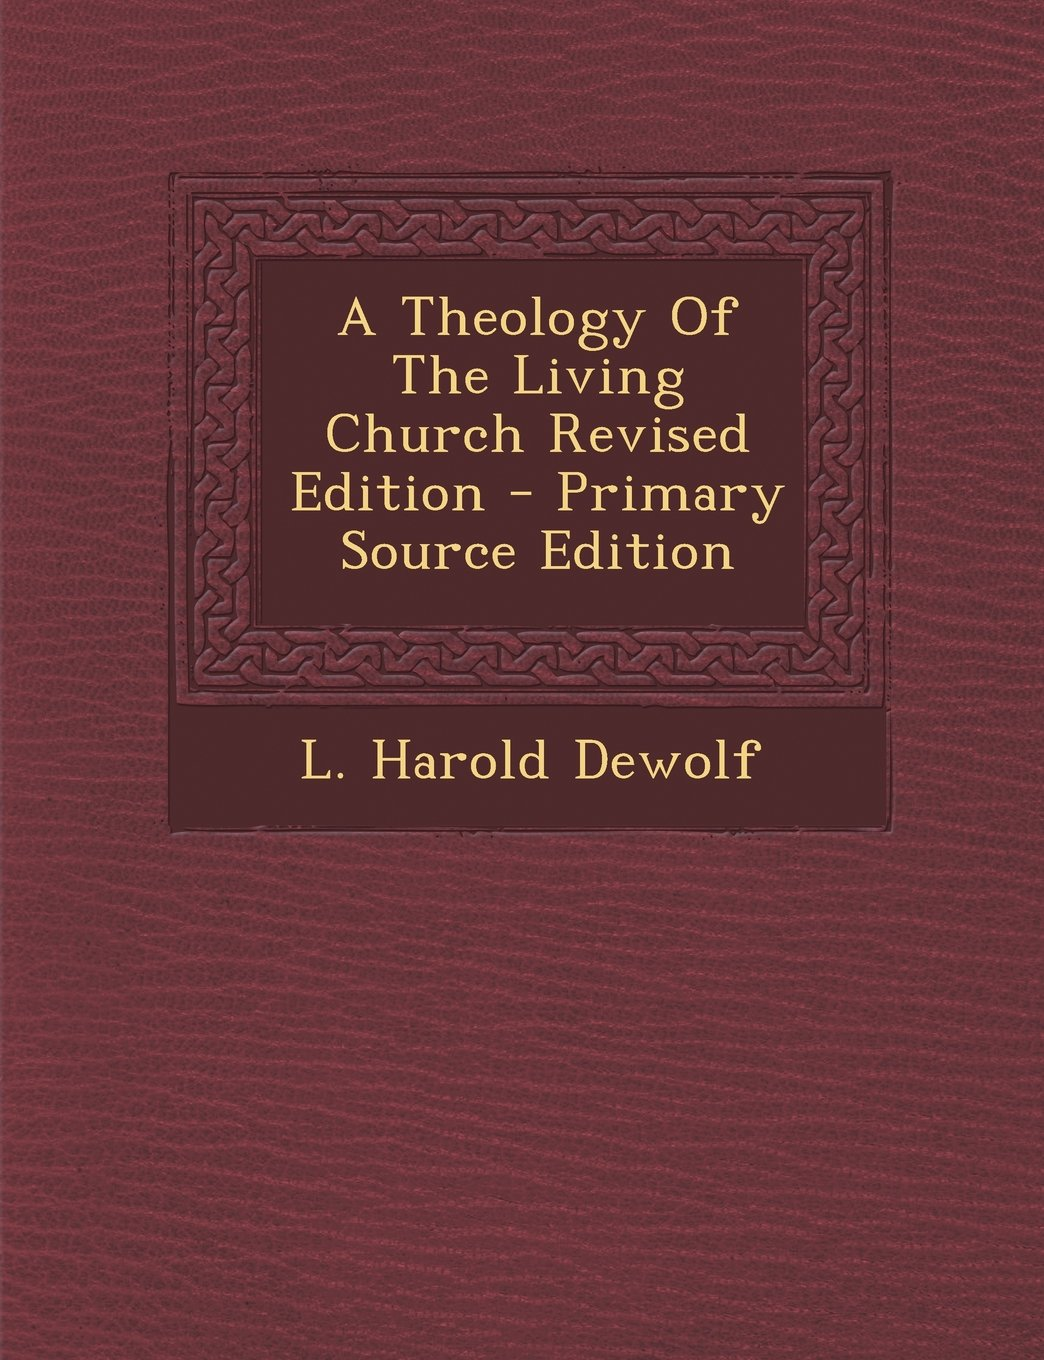 A Theology Of The Living Church Revised Edition - Primary Source Edition pdf epub